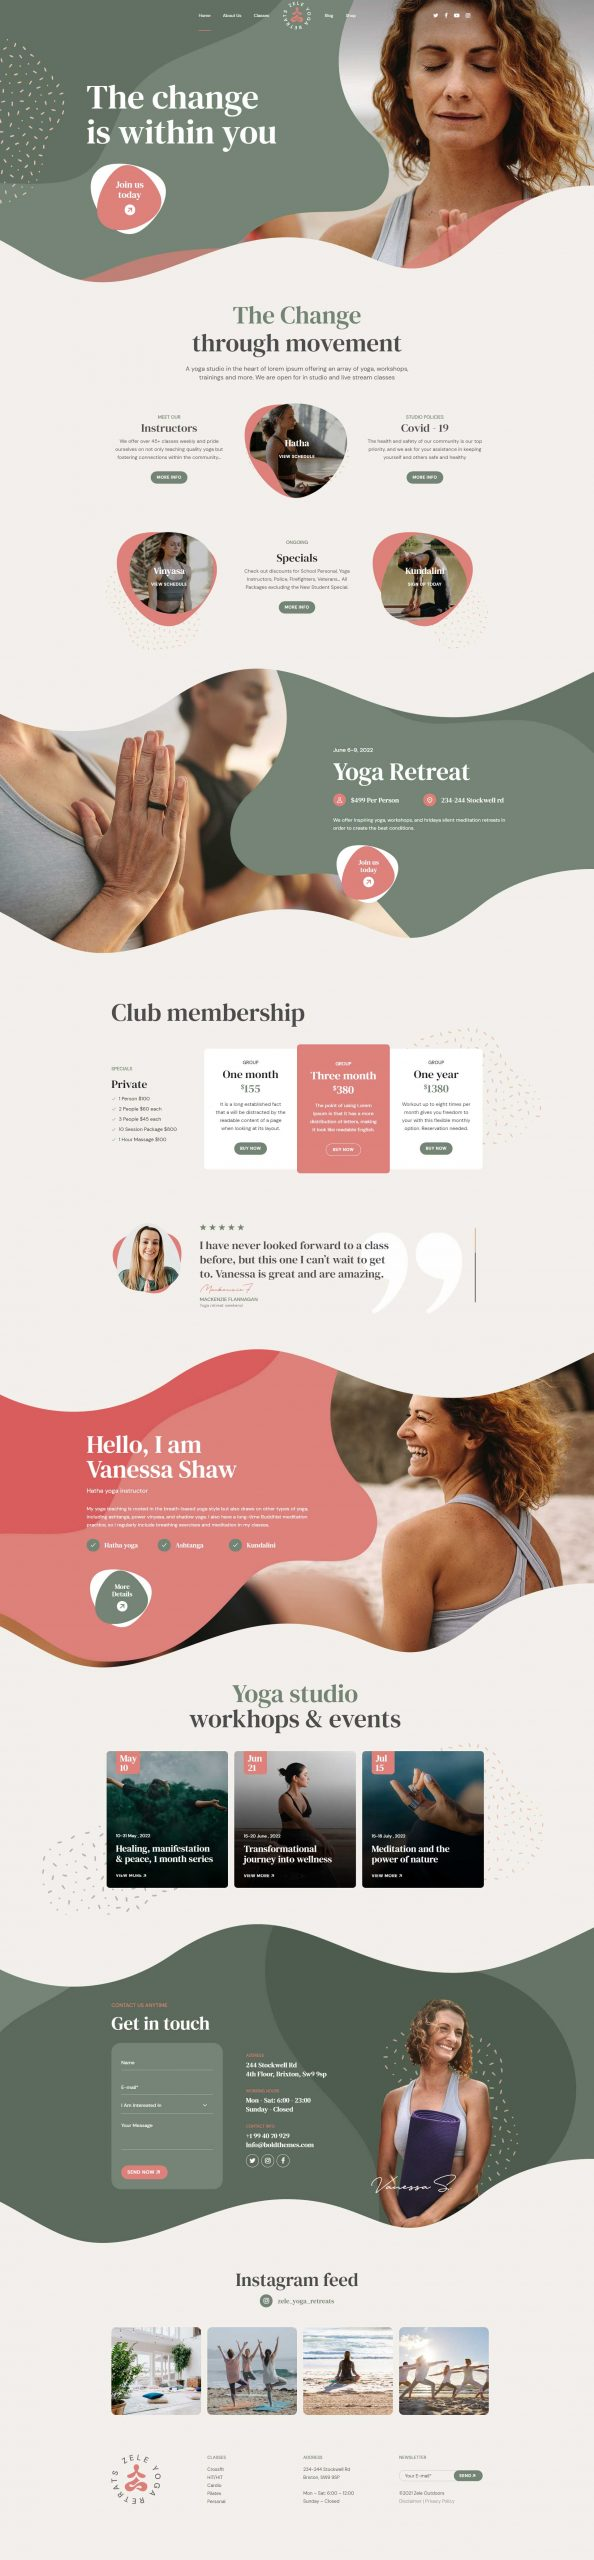 http://zele.bold-themes.com/wp-content/uploads/2021/07/Fluid-Home-04-scaled-1.jpg